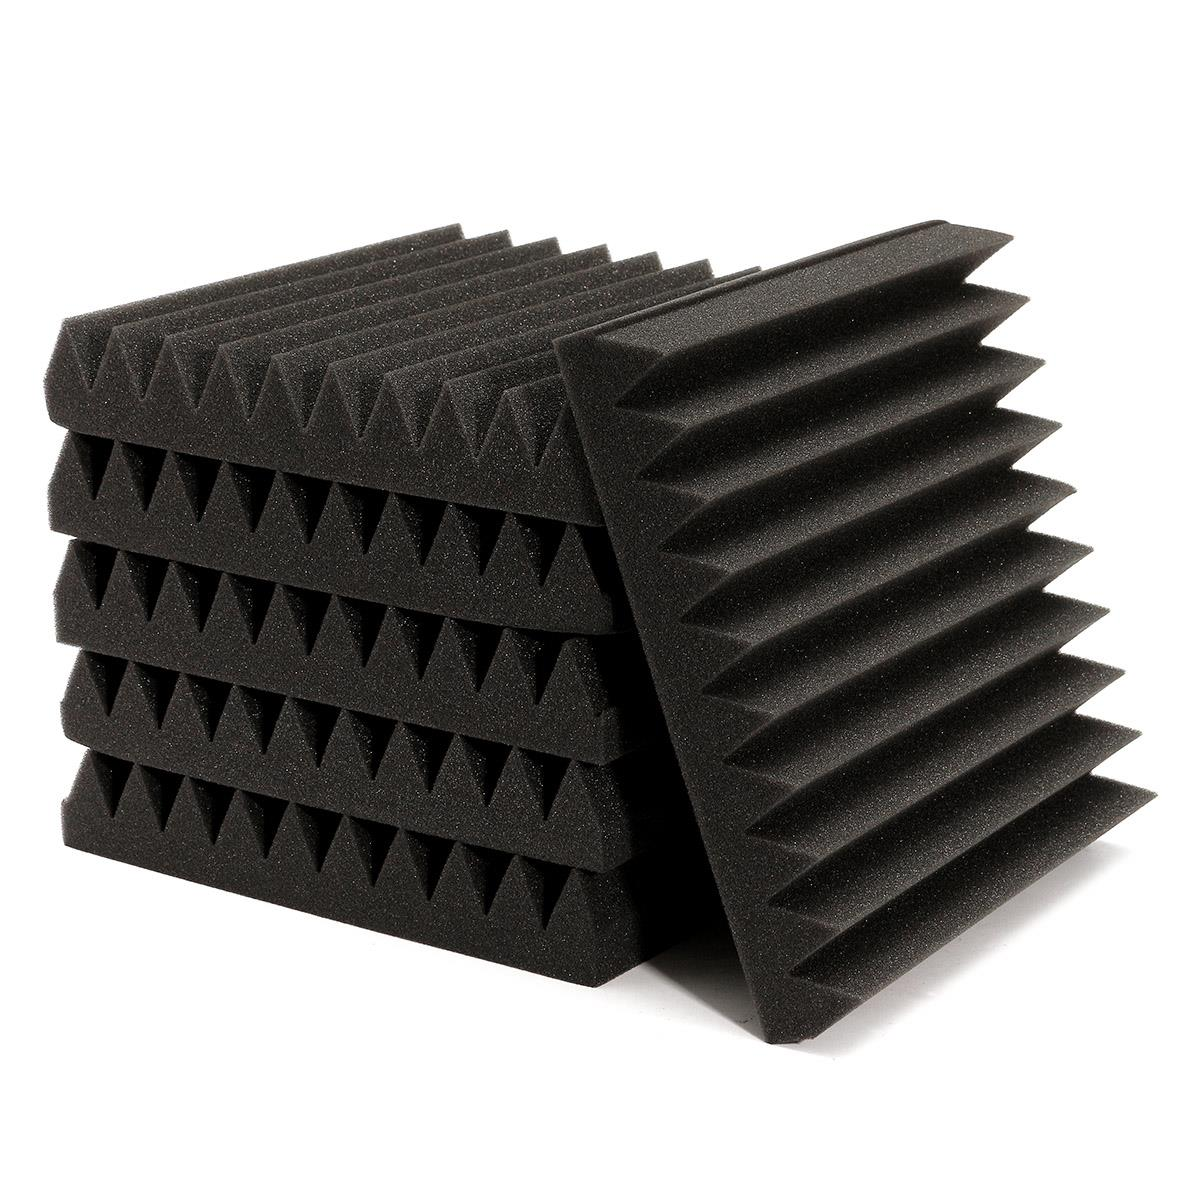 Wall Soundproofing Material : Newest pcs soundproofing acoustic wedge foam tiles wall